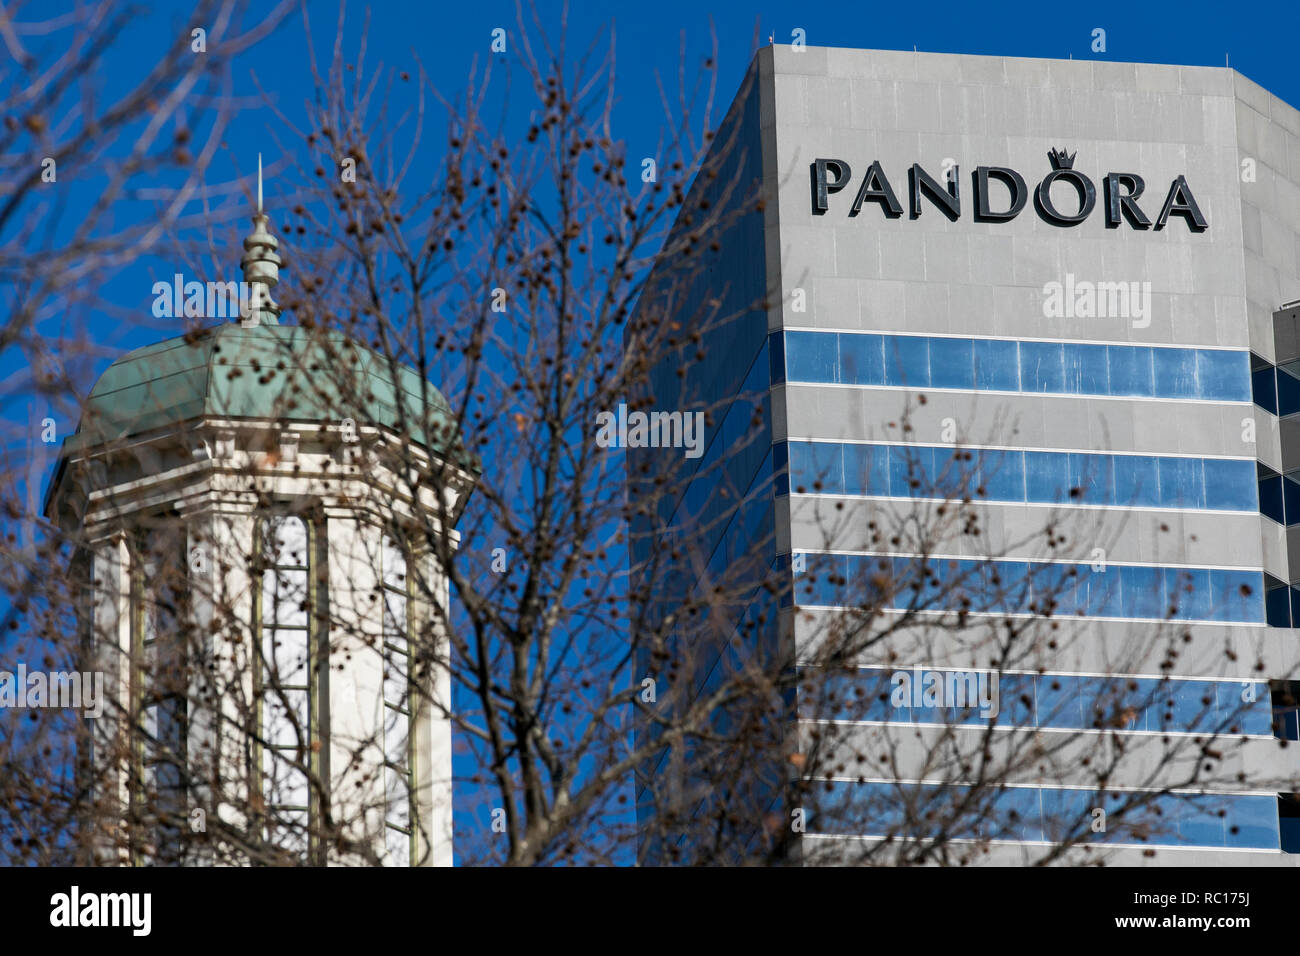 Pandora Jewelry High Resolution Stock Photography And Images Alamy